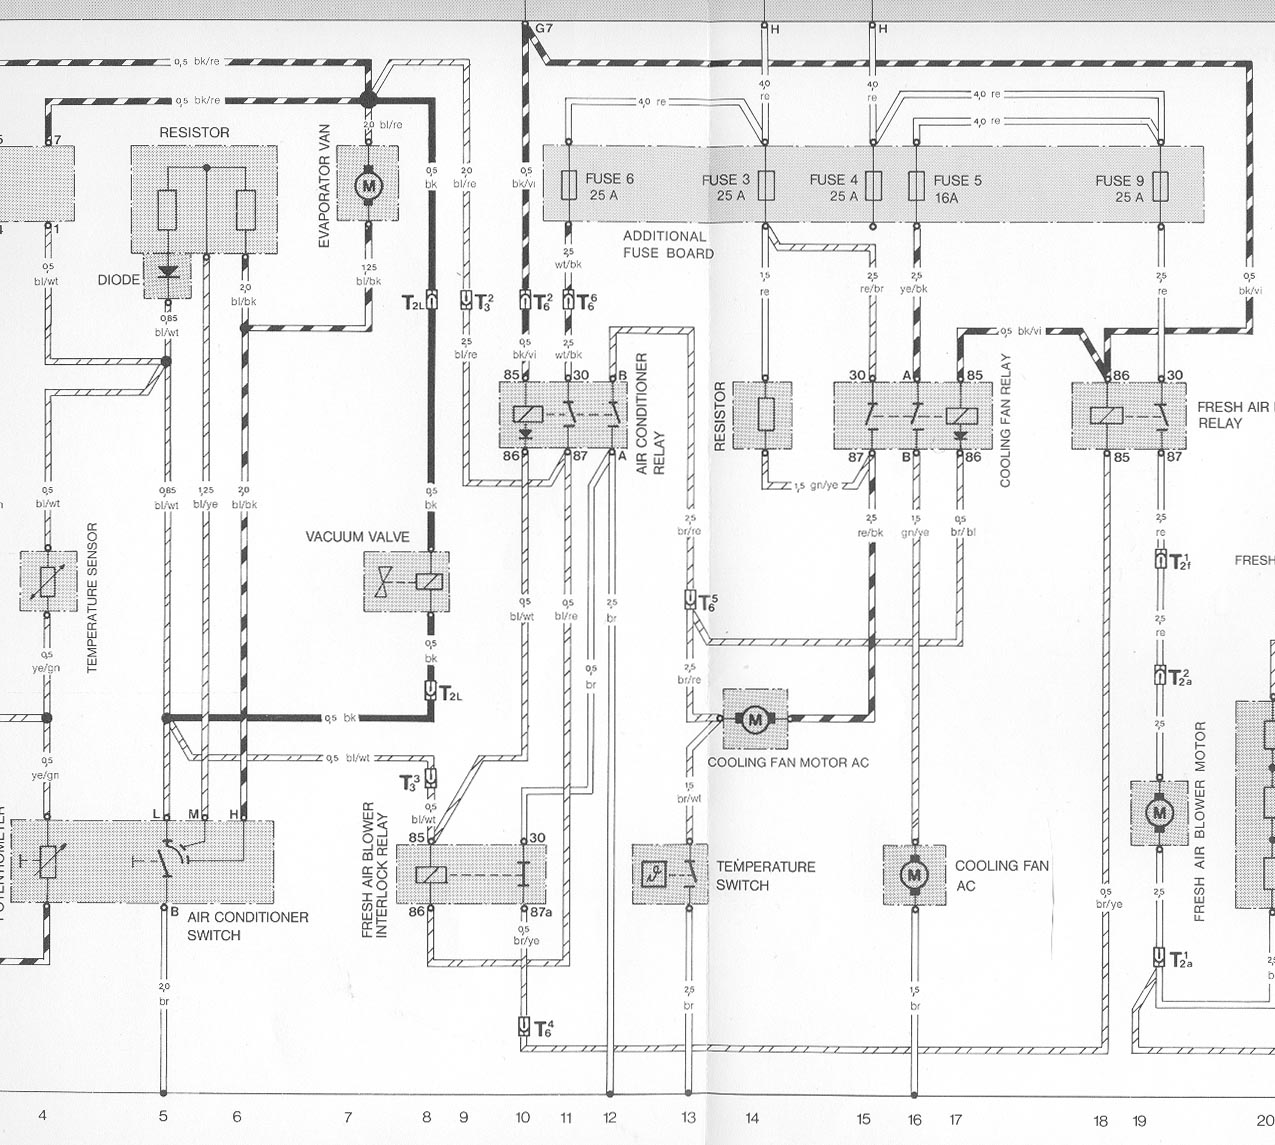 early_cooling_fan_with_ac cooling fan operation and troubleshooting Hayden Electric Fan Wiring Diagram at bayanpartner.co